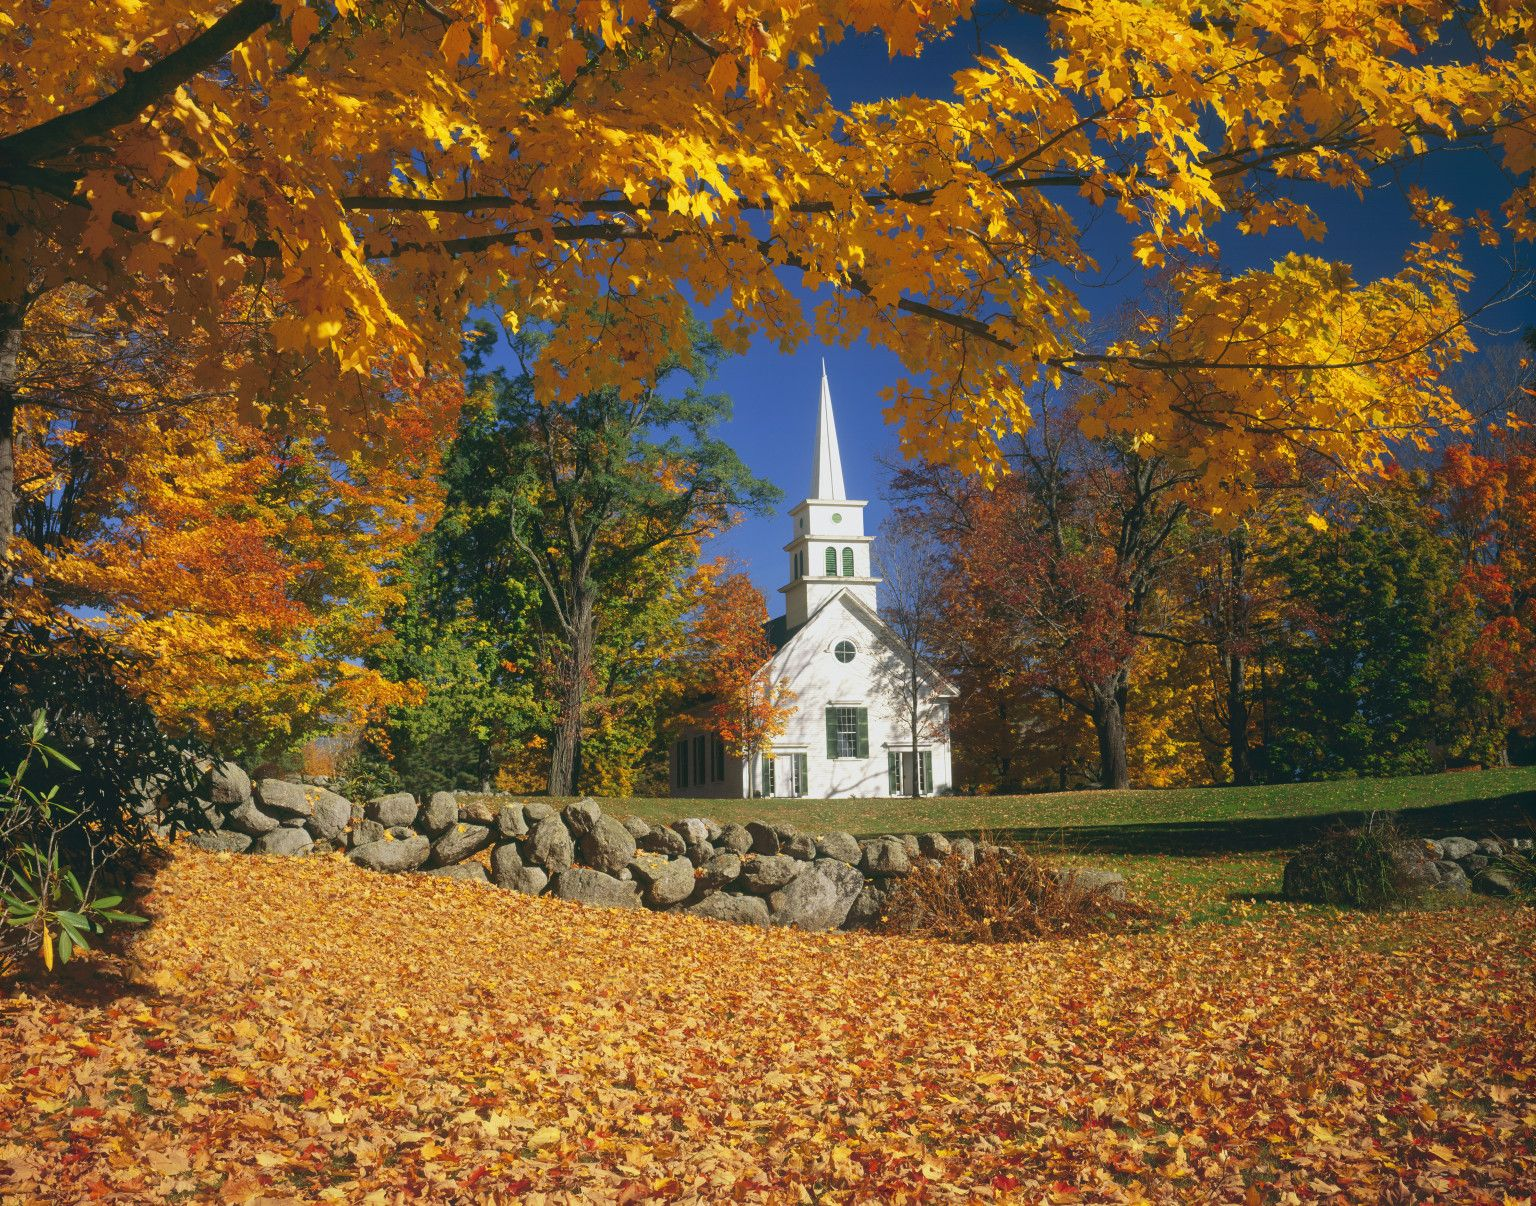 A New Hampshire Church In Autumn Visions Of The Past